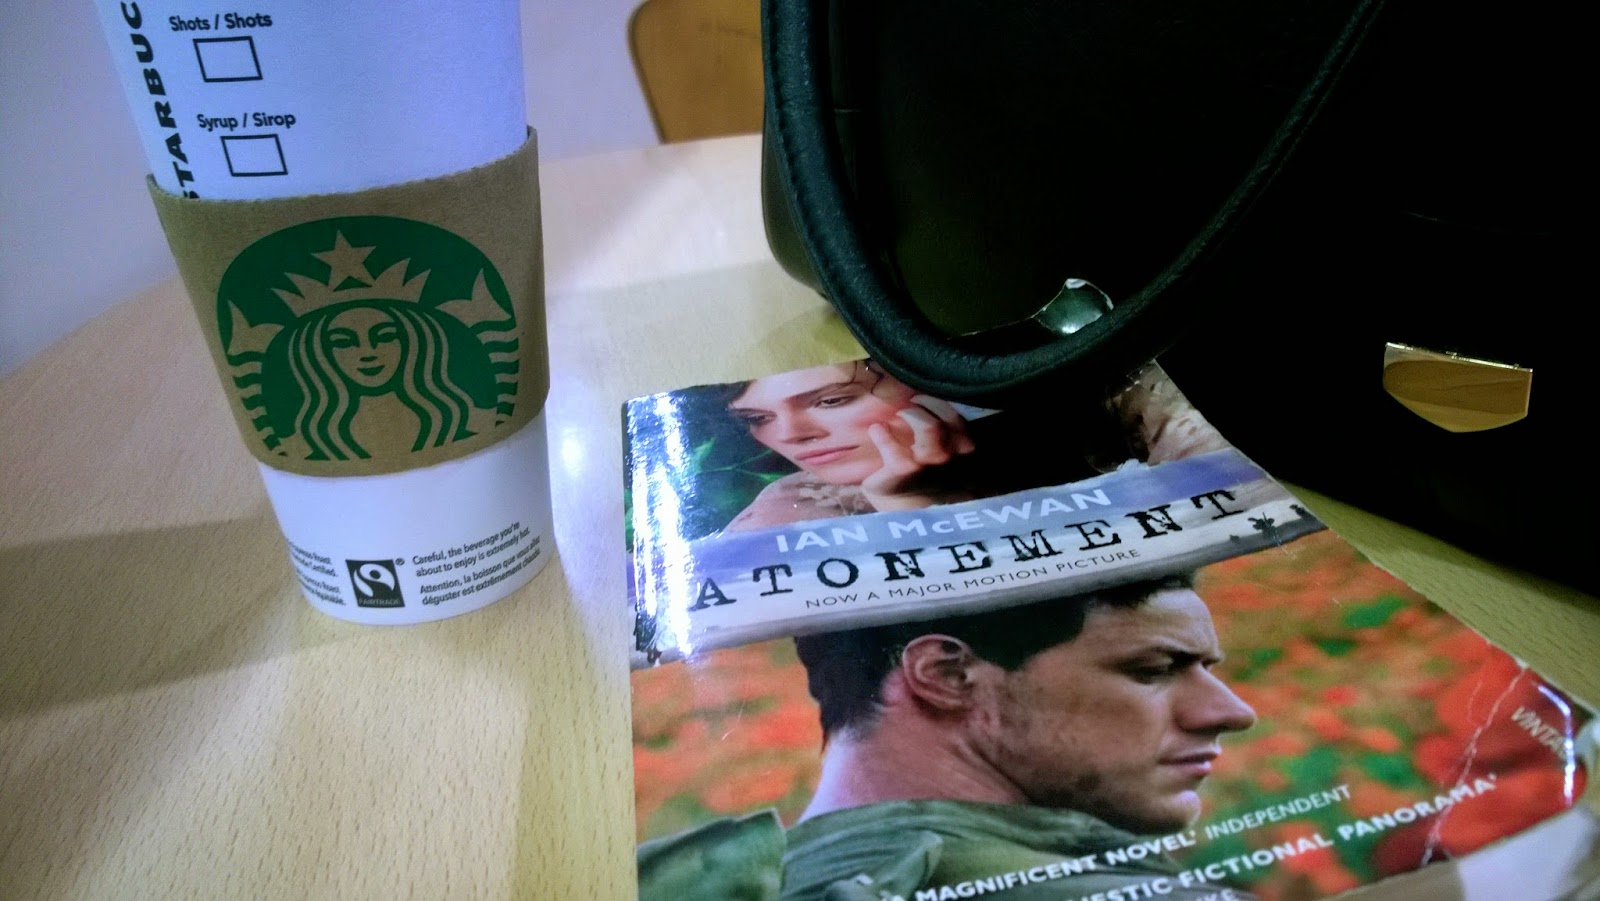 Atonement book and Starbucks coffee